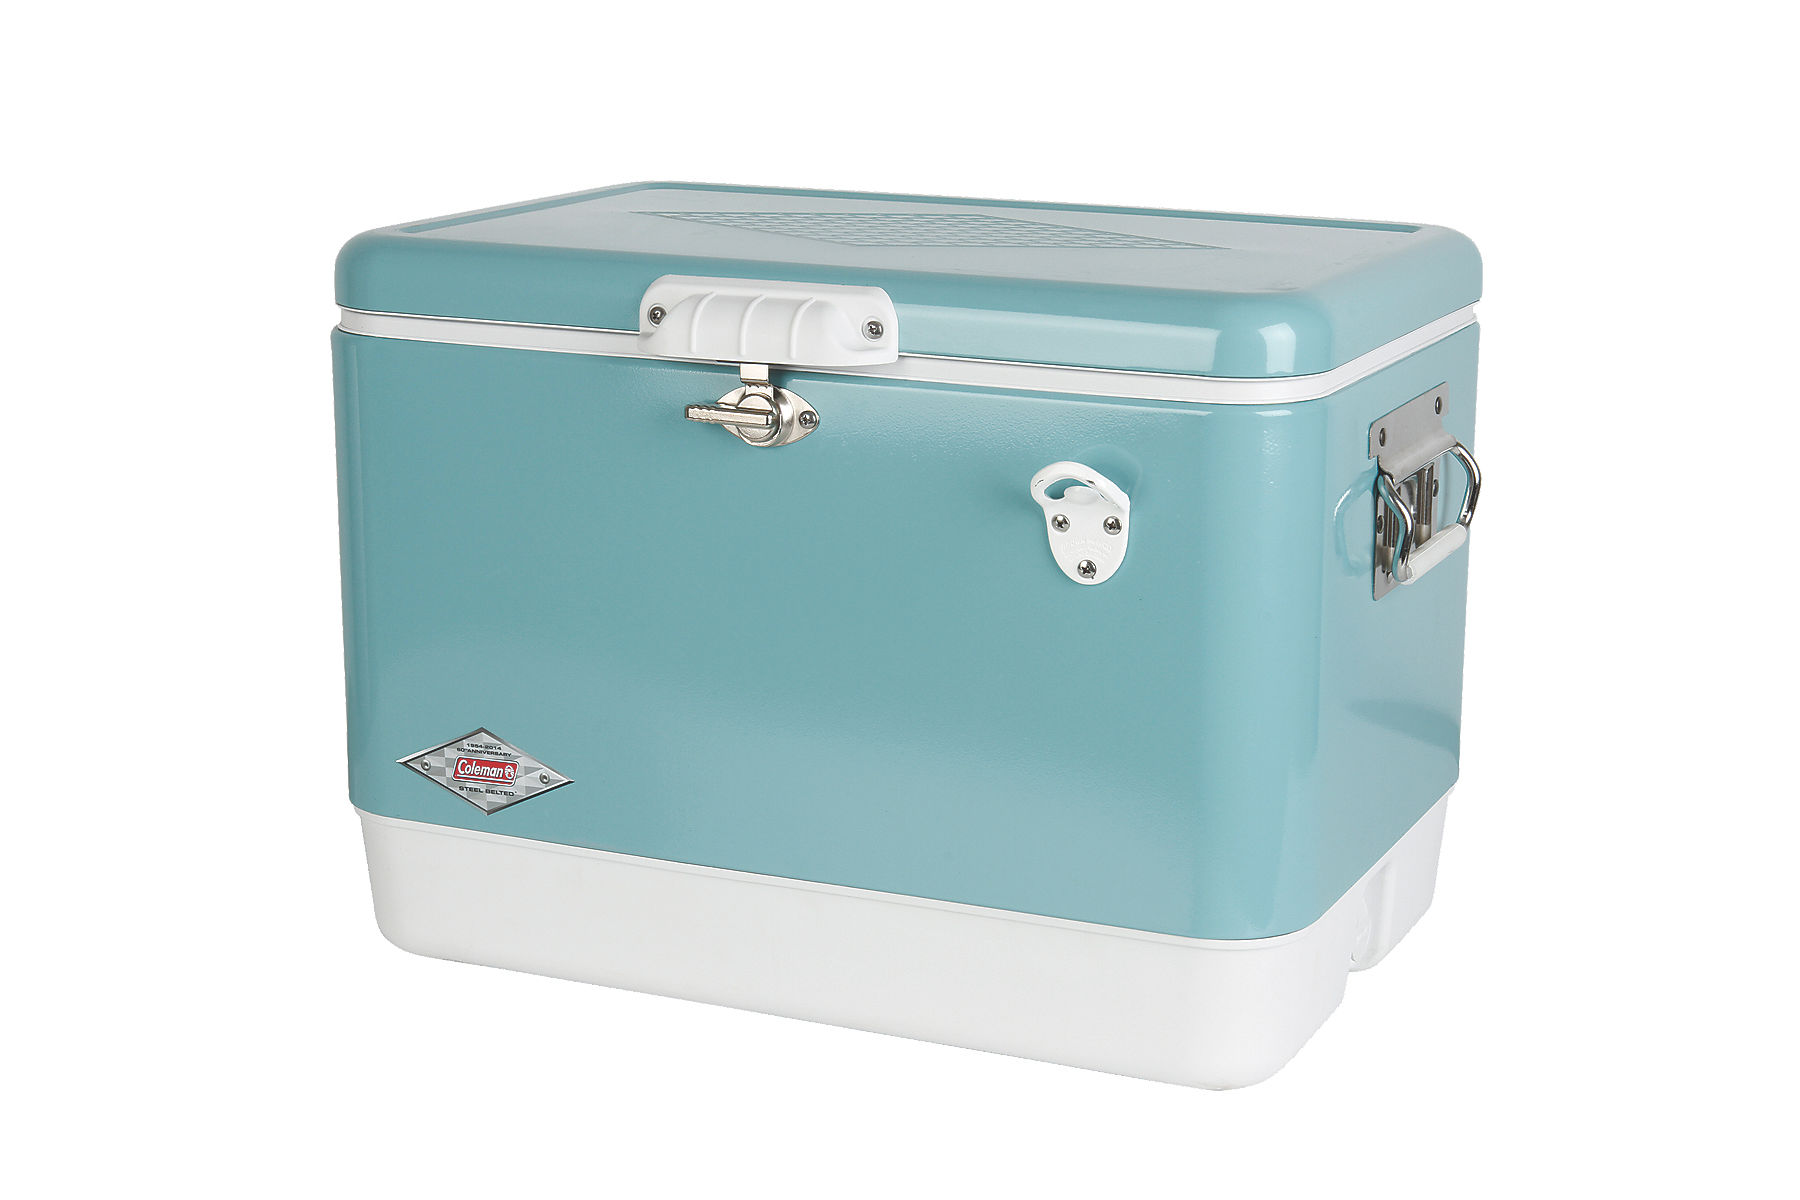 This Retro-Chic Cooler Has Nearly 1,000 5-star Reviews on Amazon